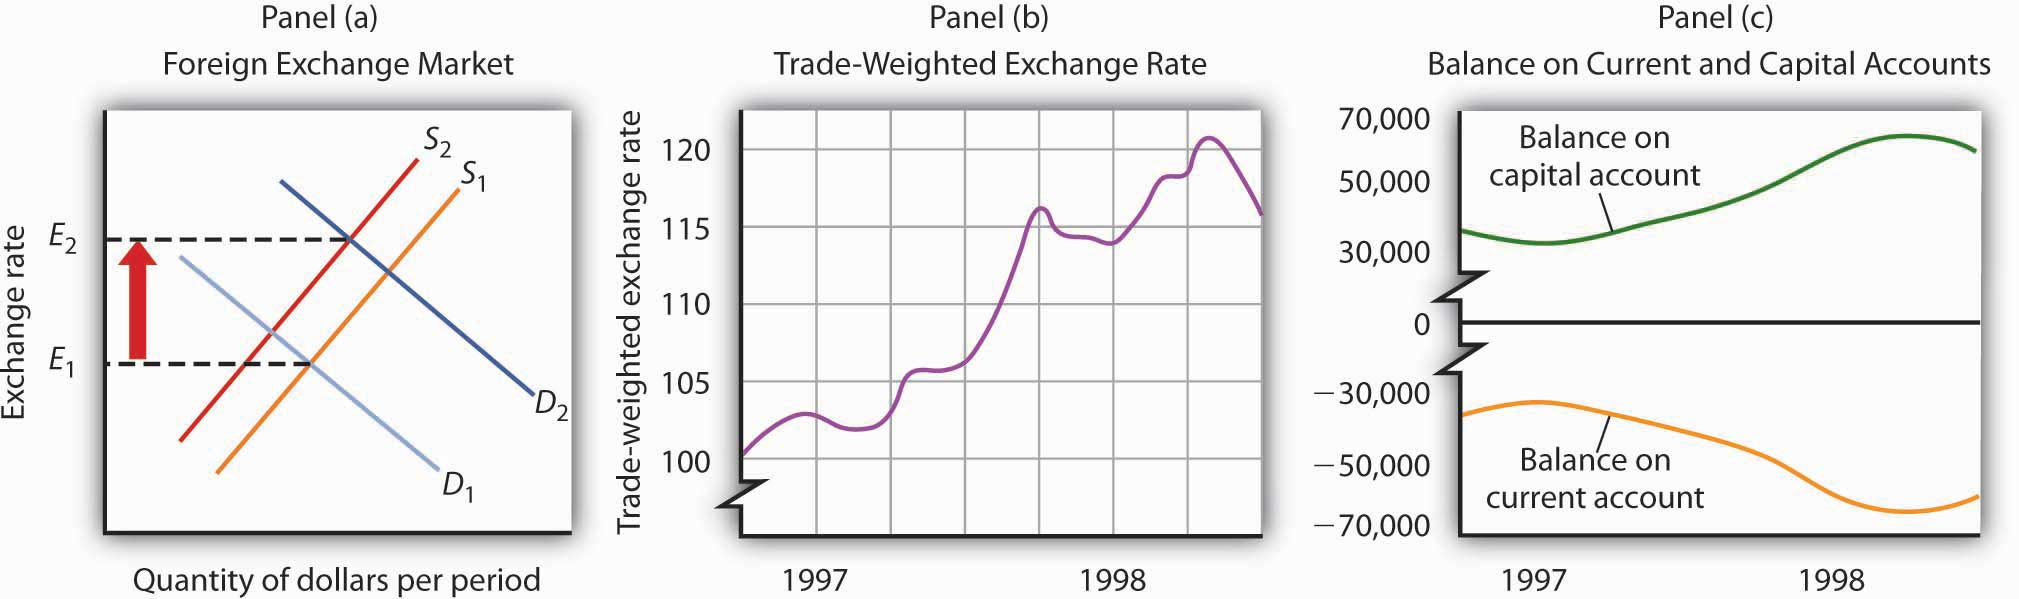 A Change in the Exchange Rate Affected the US Current and Capital Accounts in 1997 and 1998